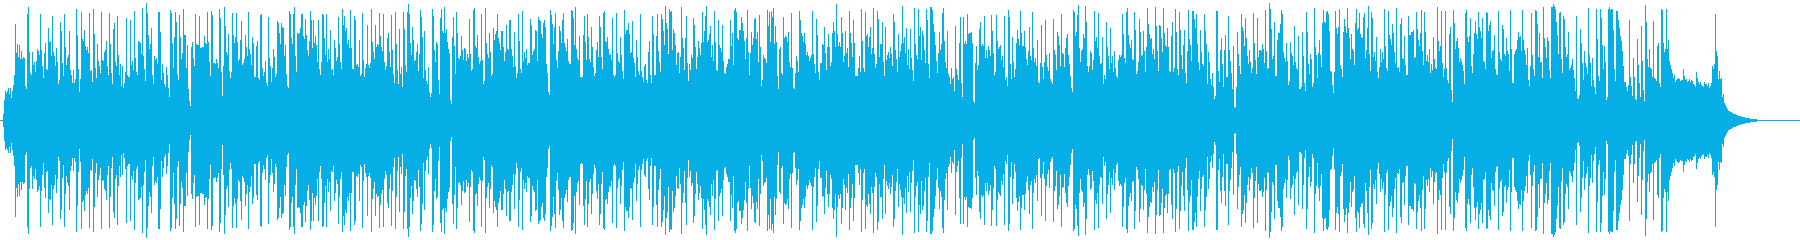 Heart pops that are healed's reproduced waveform